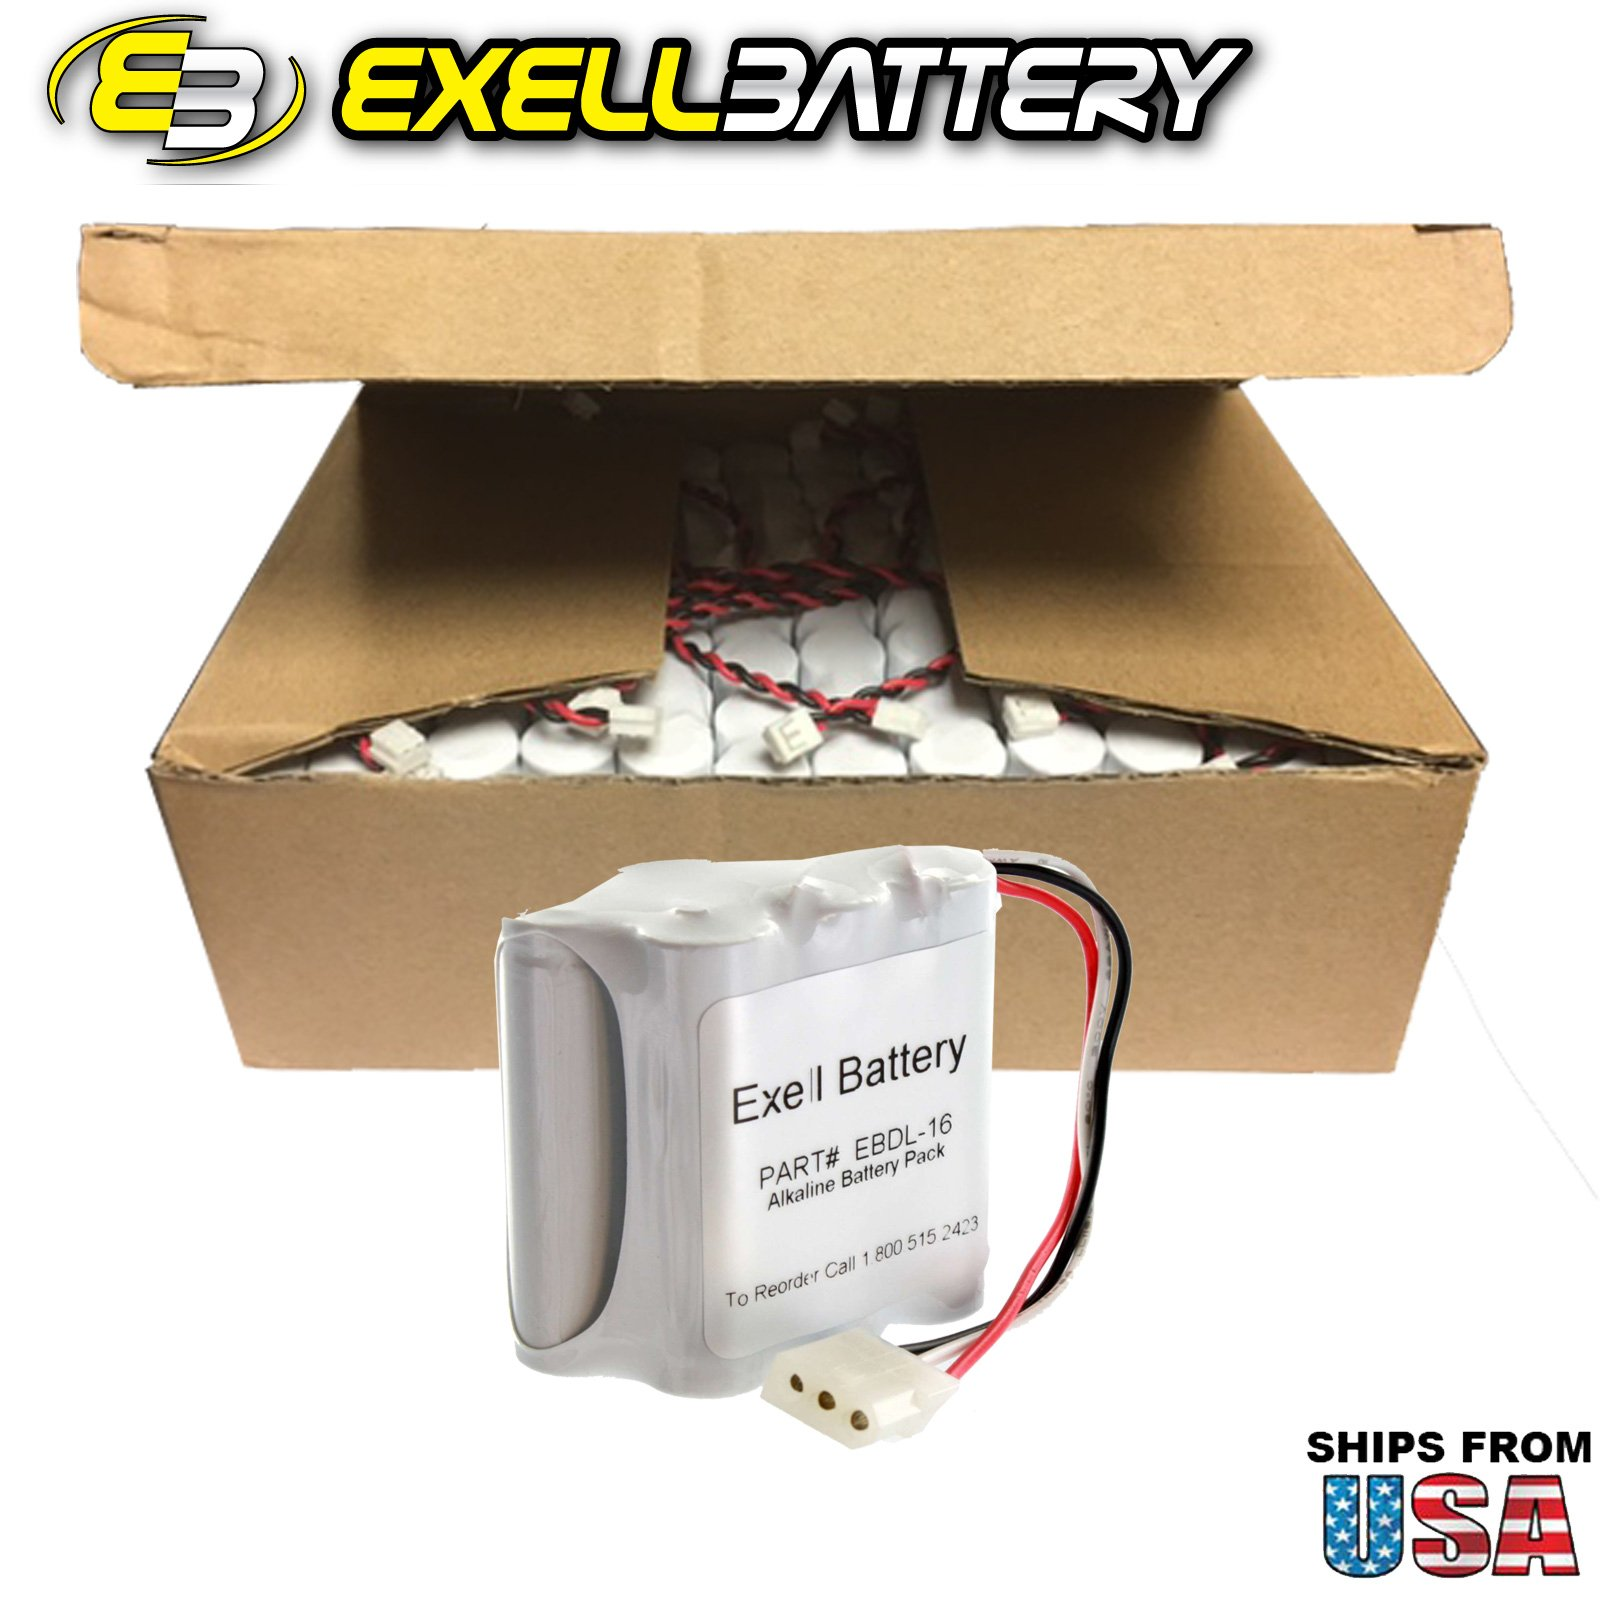 48x Exell Battery Door Lock 9V 6-Cell Battery Pack Fits Ilco Unican & Kaba Ilco 502238, 5022501070, 52238, 700, 884950, BL09, HTL-2, IL22, Interstate DRY0048, MLKBA0603, PM1700, Style D Ilco USA SHIP